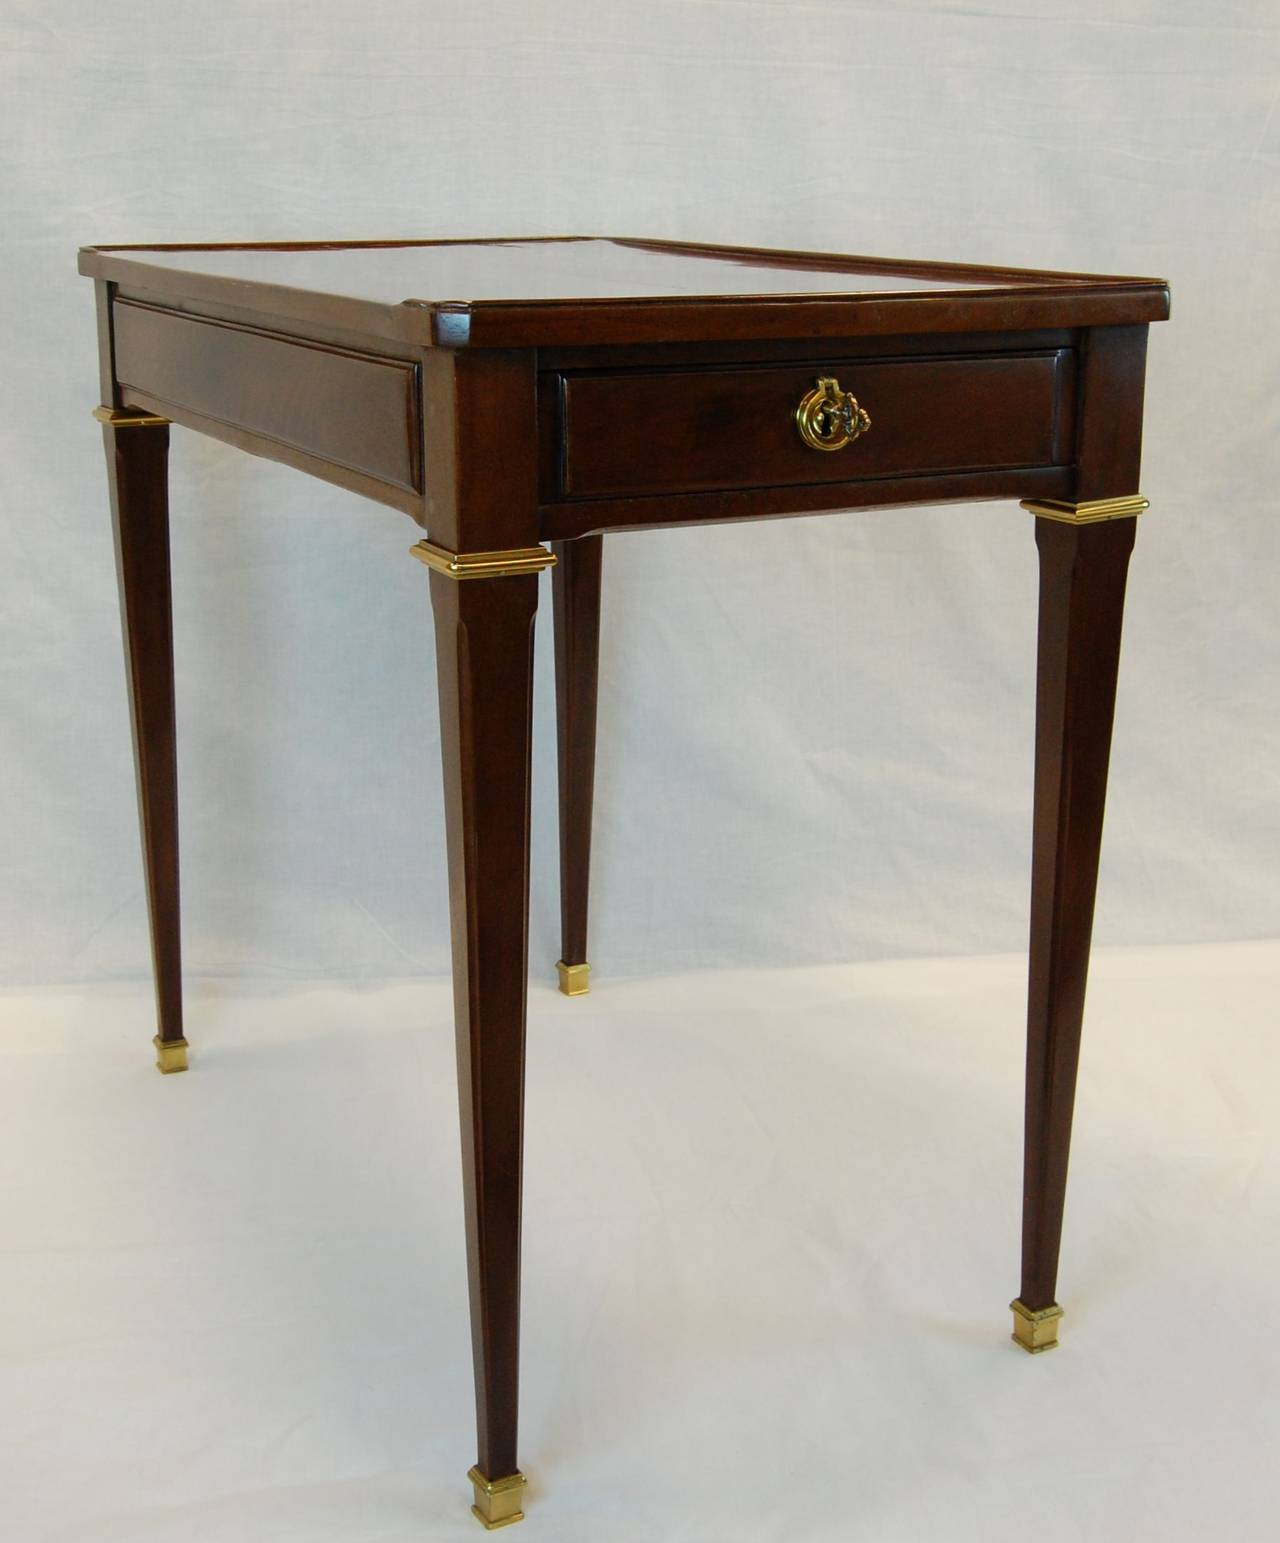 Royal louis xvi mahogany table ecrire circa 1787 stamped riesener at 1stdibs - Garde meuble fontainebleau ...